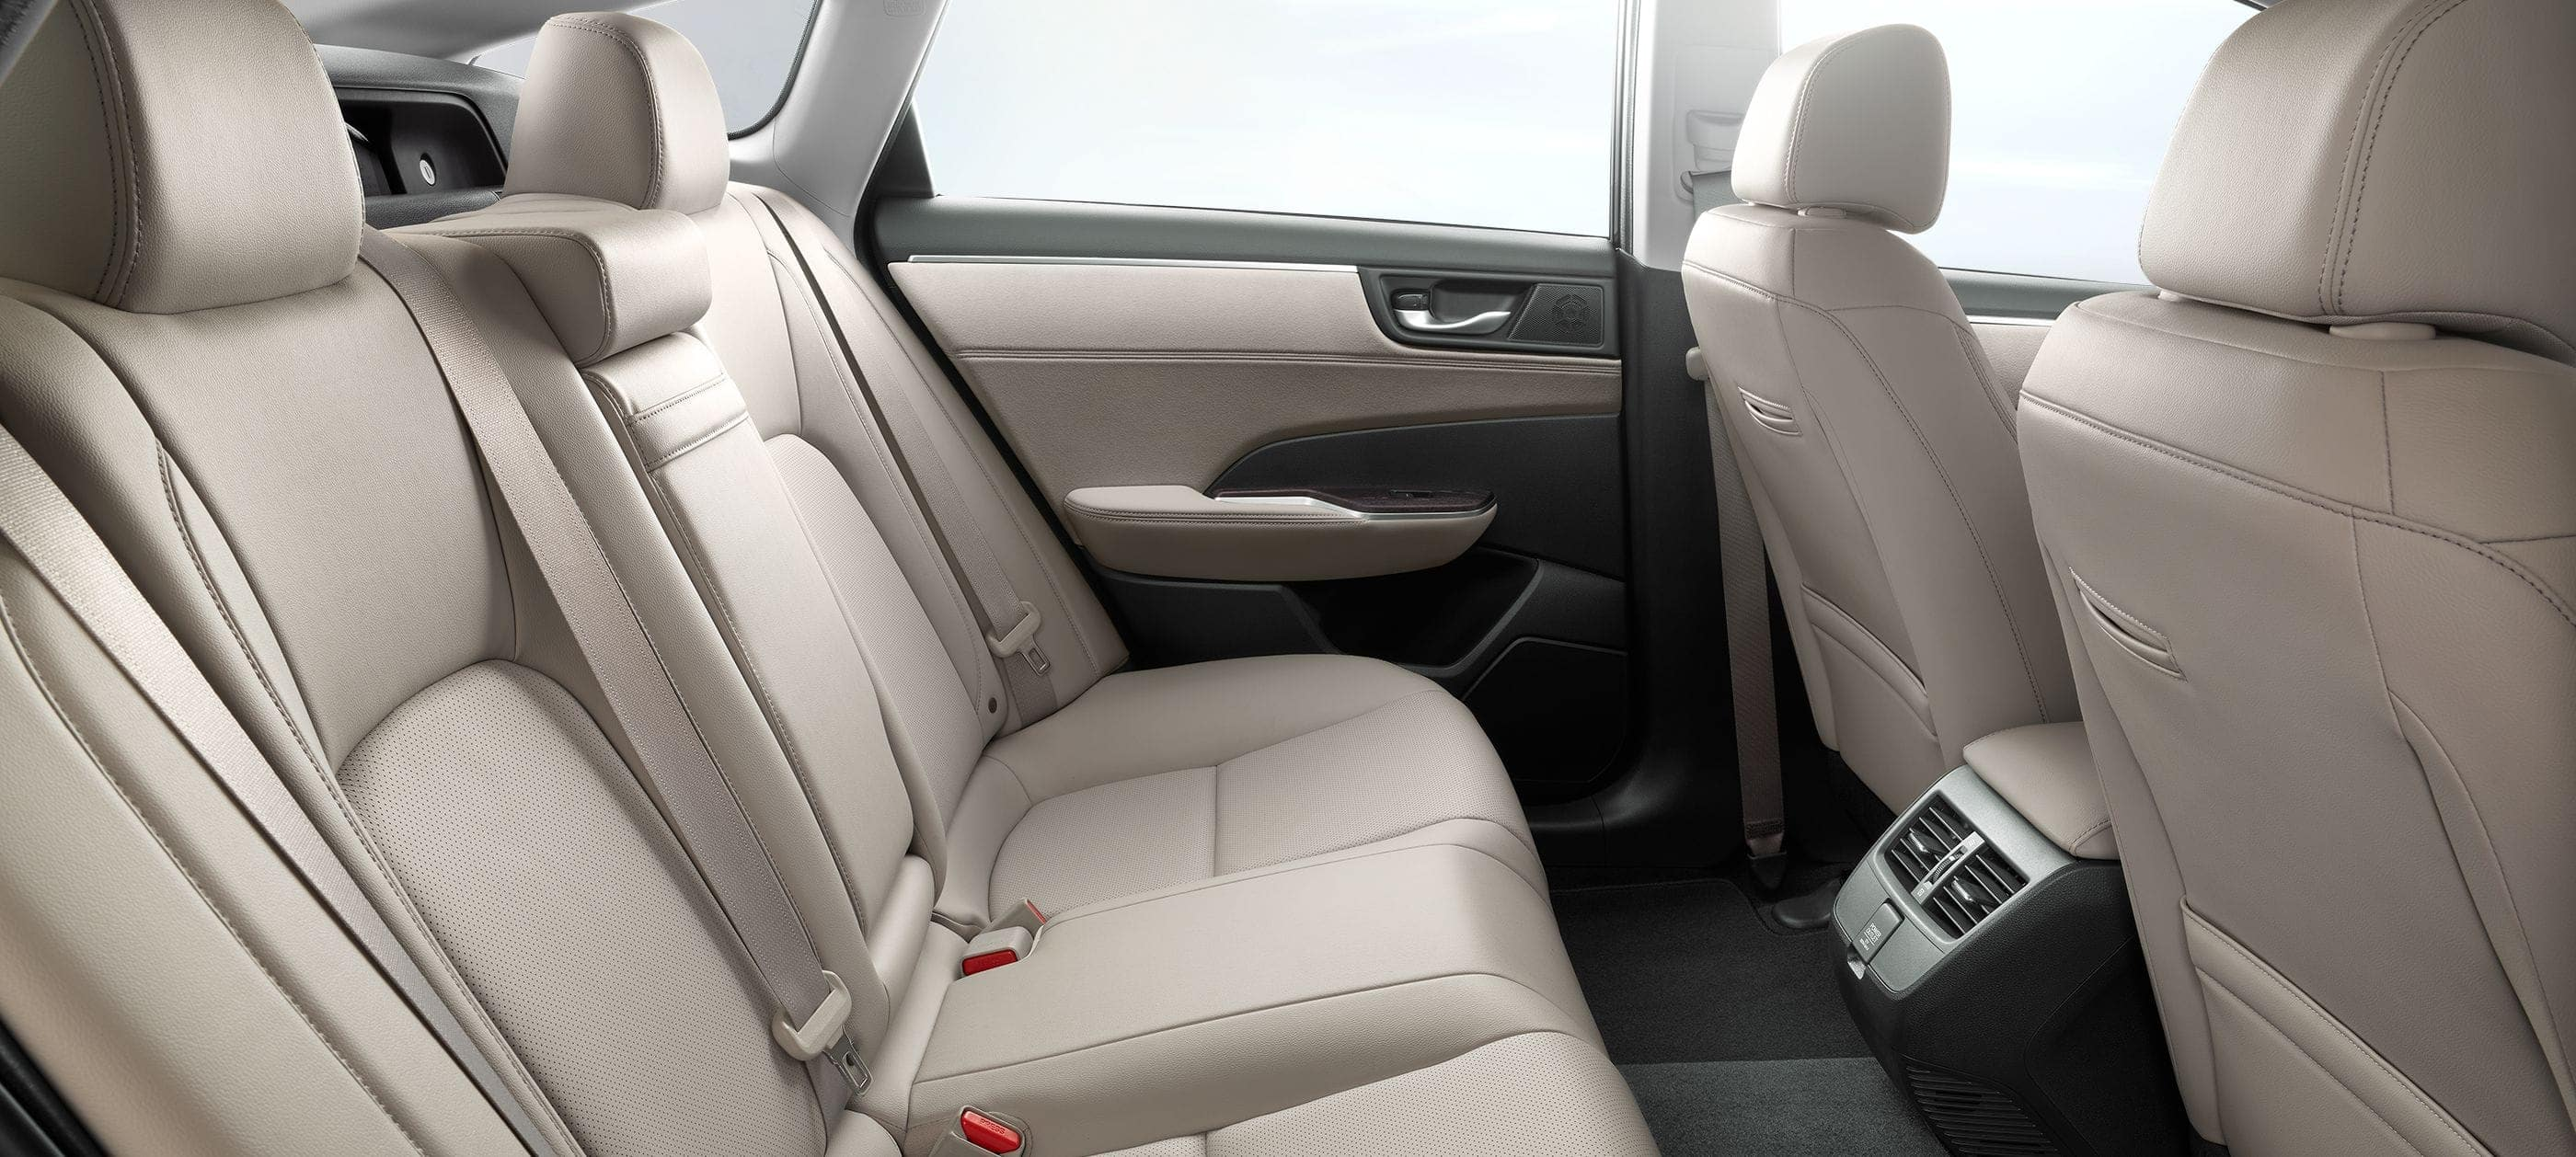 Rear seats of 2018 Clarity Plug-in Hybrid with beige leather-trimmed seating surfaces.